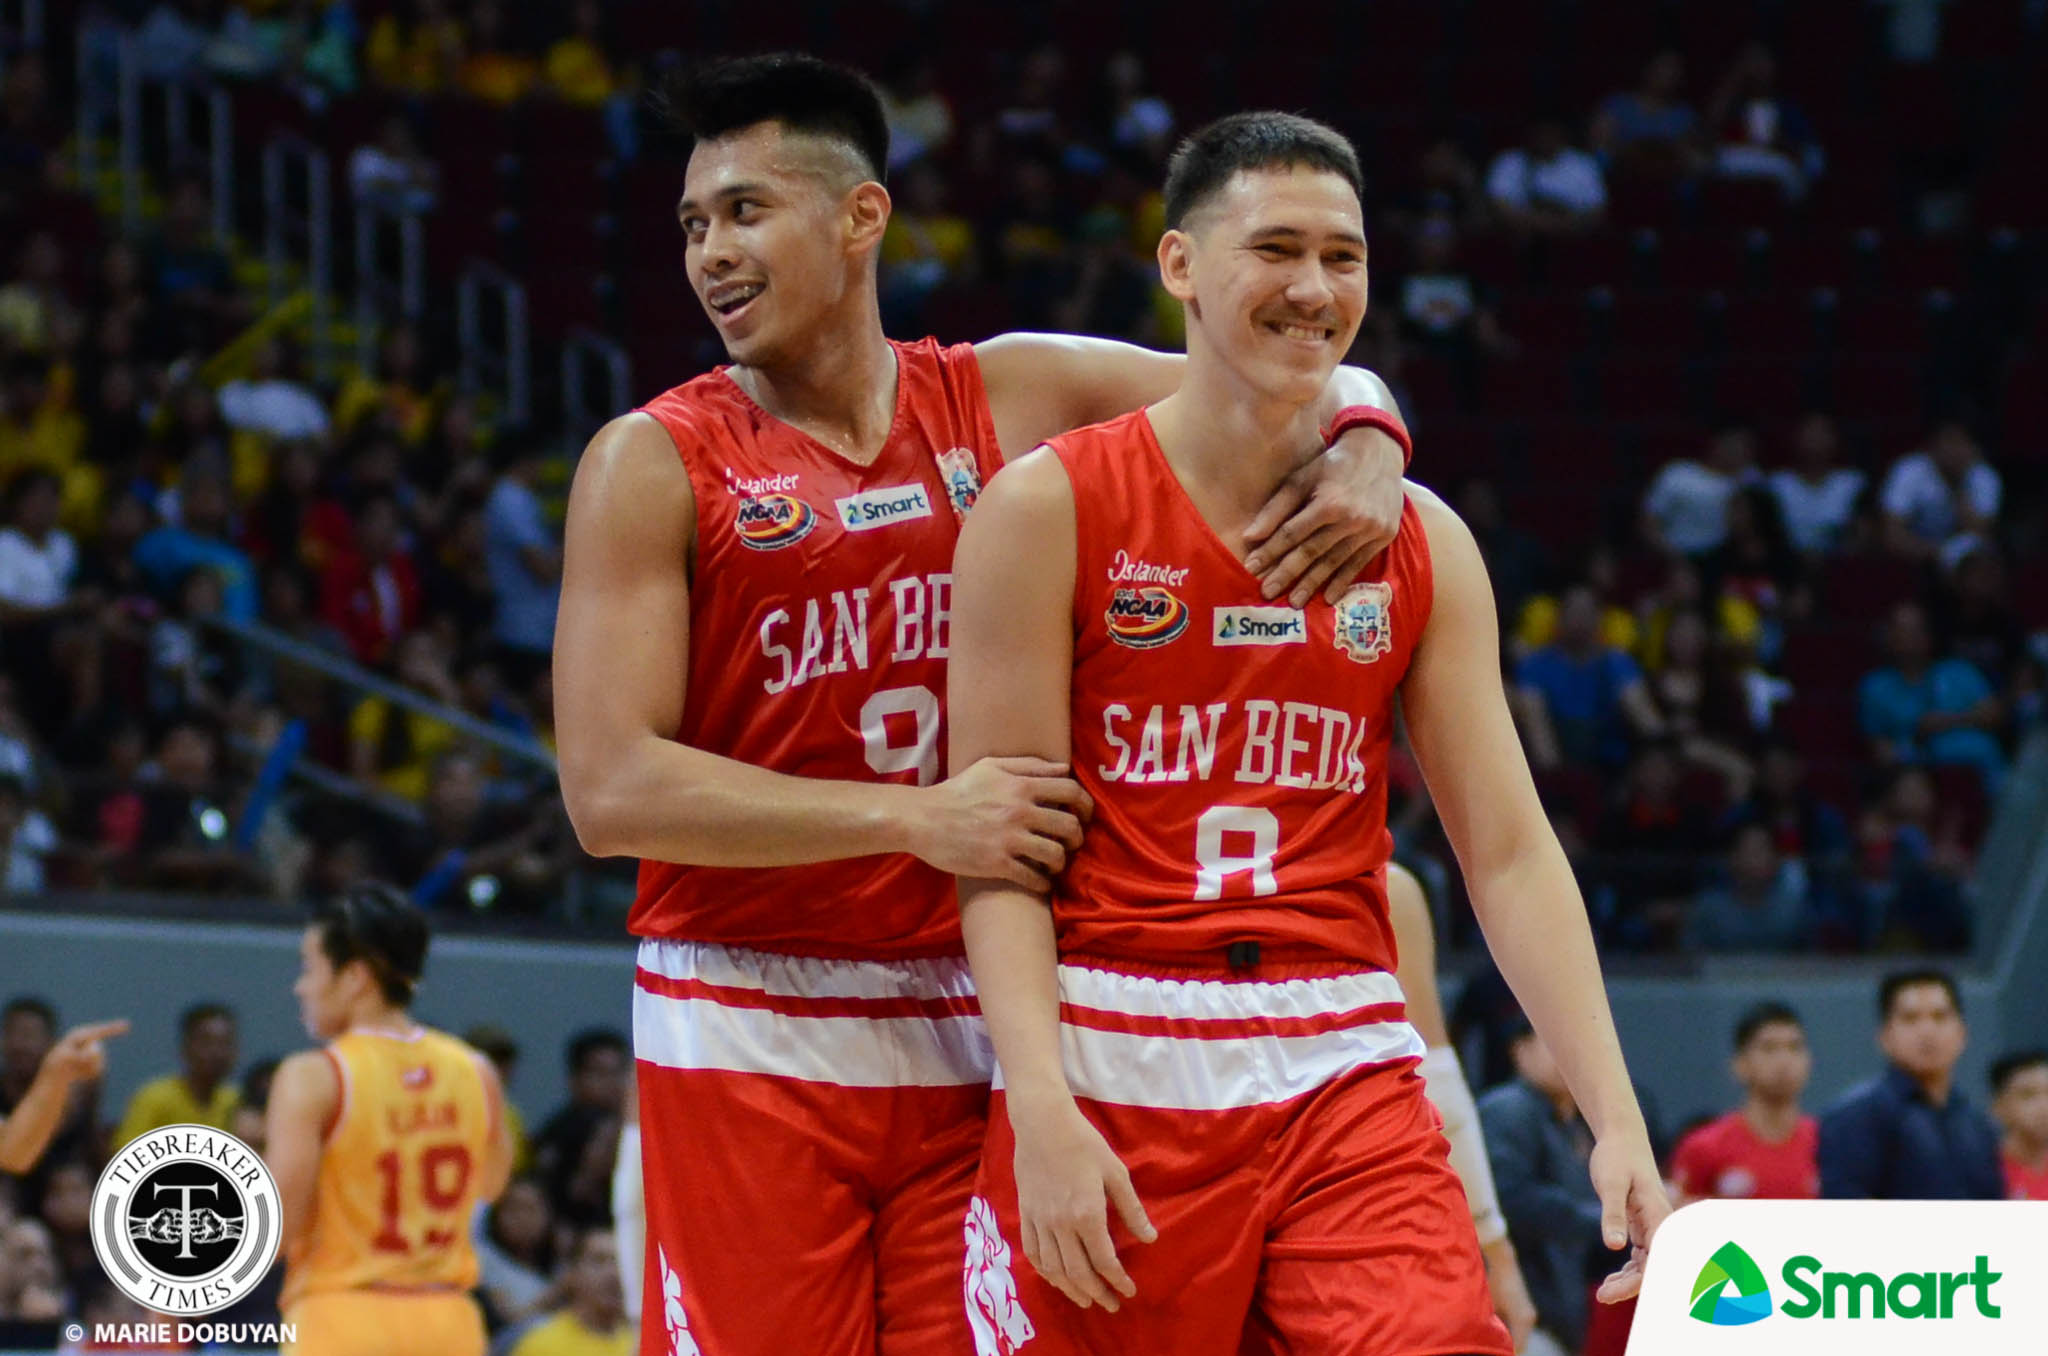 Philippine Sports News - Tiebreaker Times San Beda advances to 12th straight Finals Basketball NCAA News SBC SSC-R  San Sebastian Seniors Basketball San Beda Seniors Basketball Ryan Costelo Robert Bolick NCAA Season 93 Seniors Basketball NCAA Season 93 Michael Calisaan Jayson David Javee Mocon Egay Macaraya Donald Tankoua Boyet Fernandez